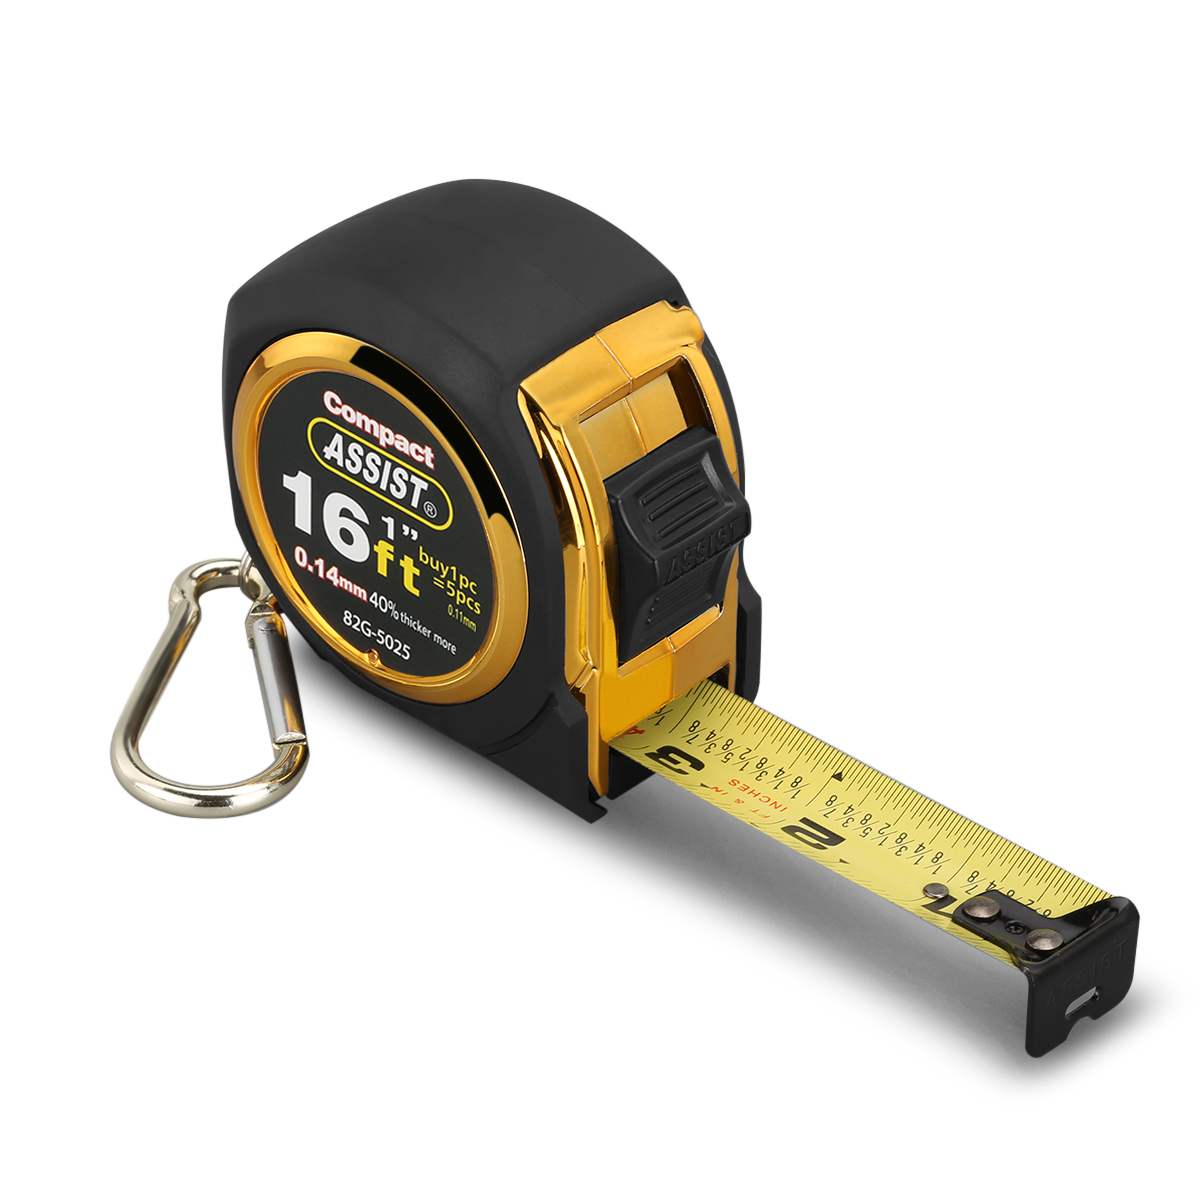 Assist 16ft Tape Measure Inches And Metric Measurement